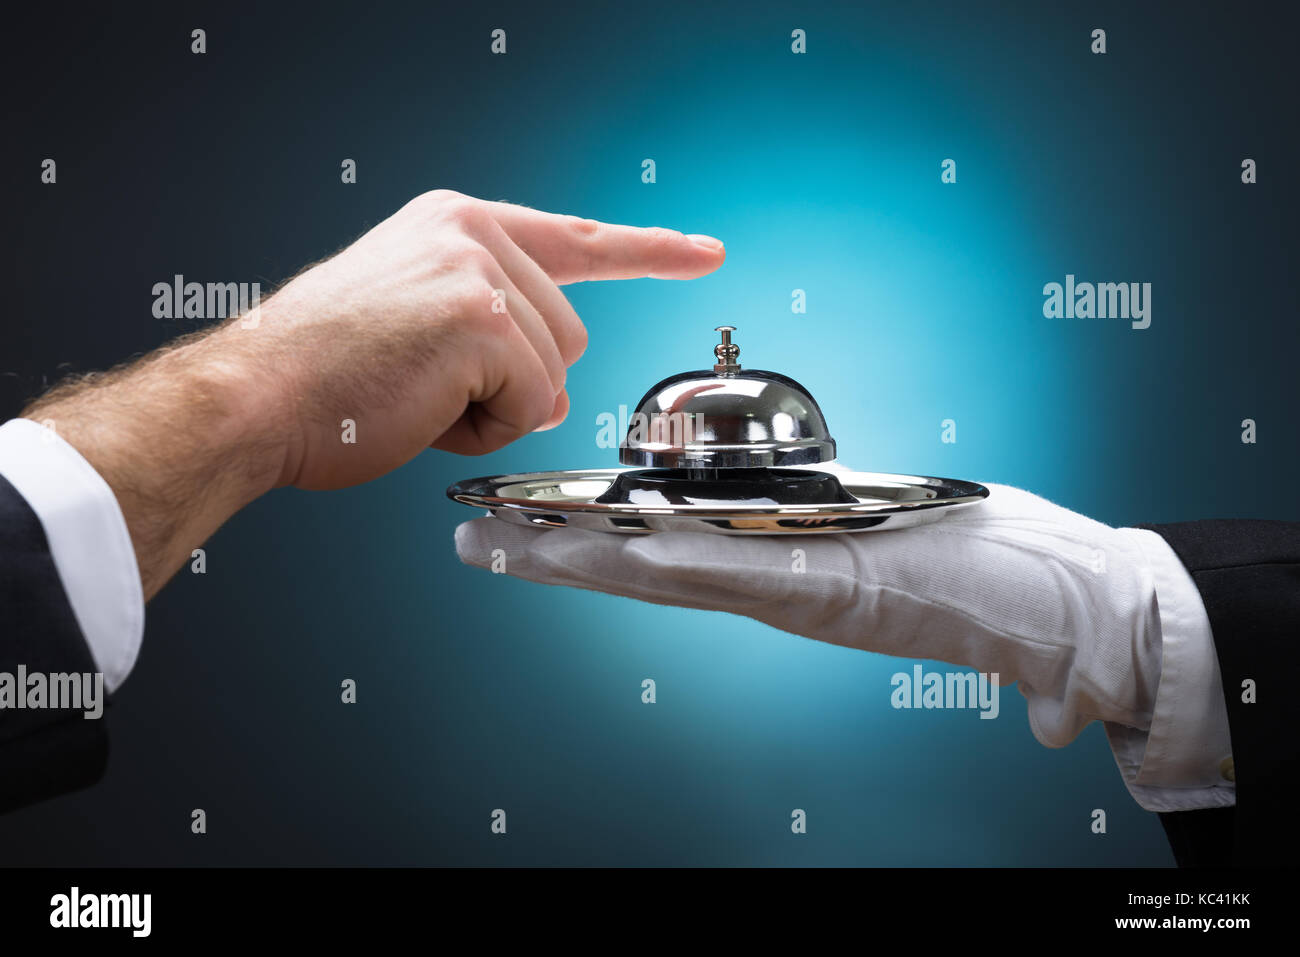 Cropped image of businessman ringing in service bell held by bellboy against blue background - Stock Image